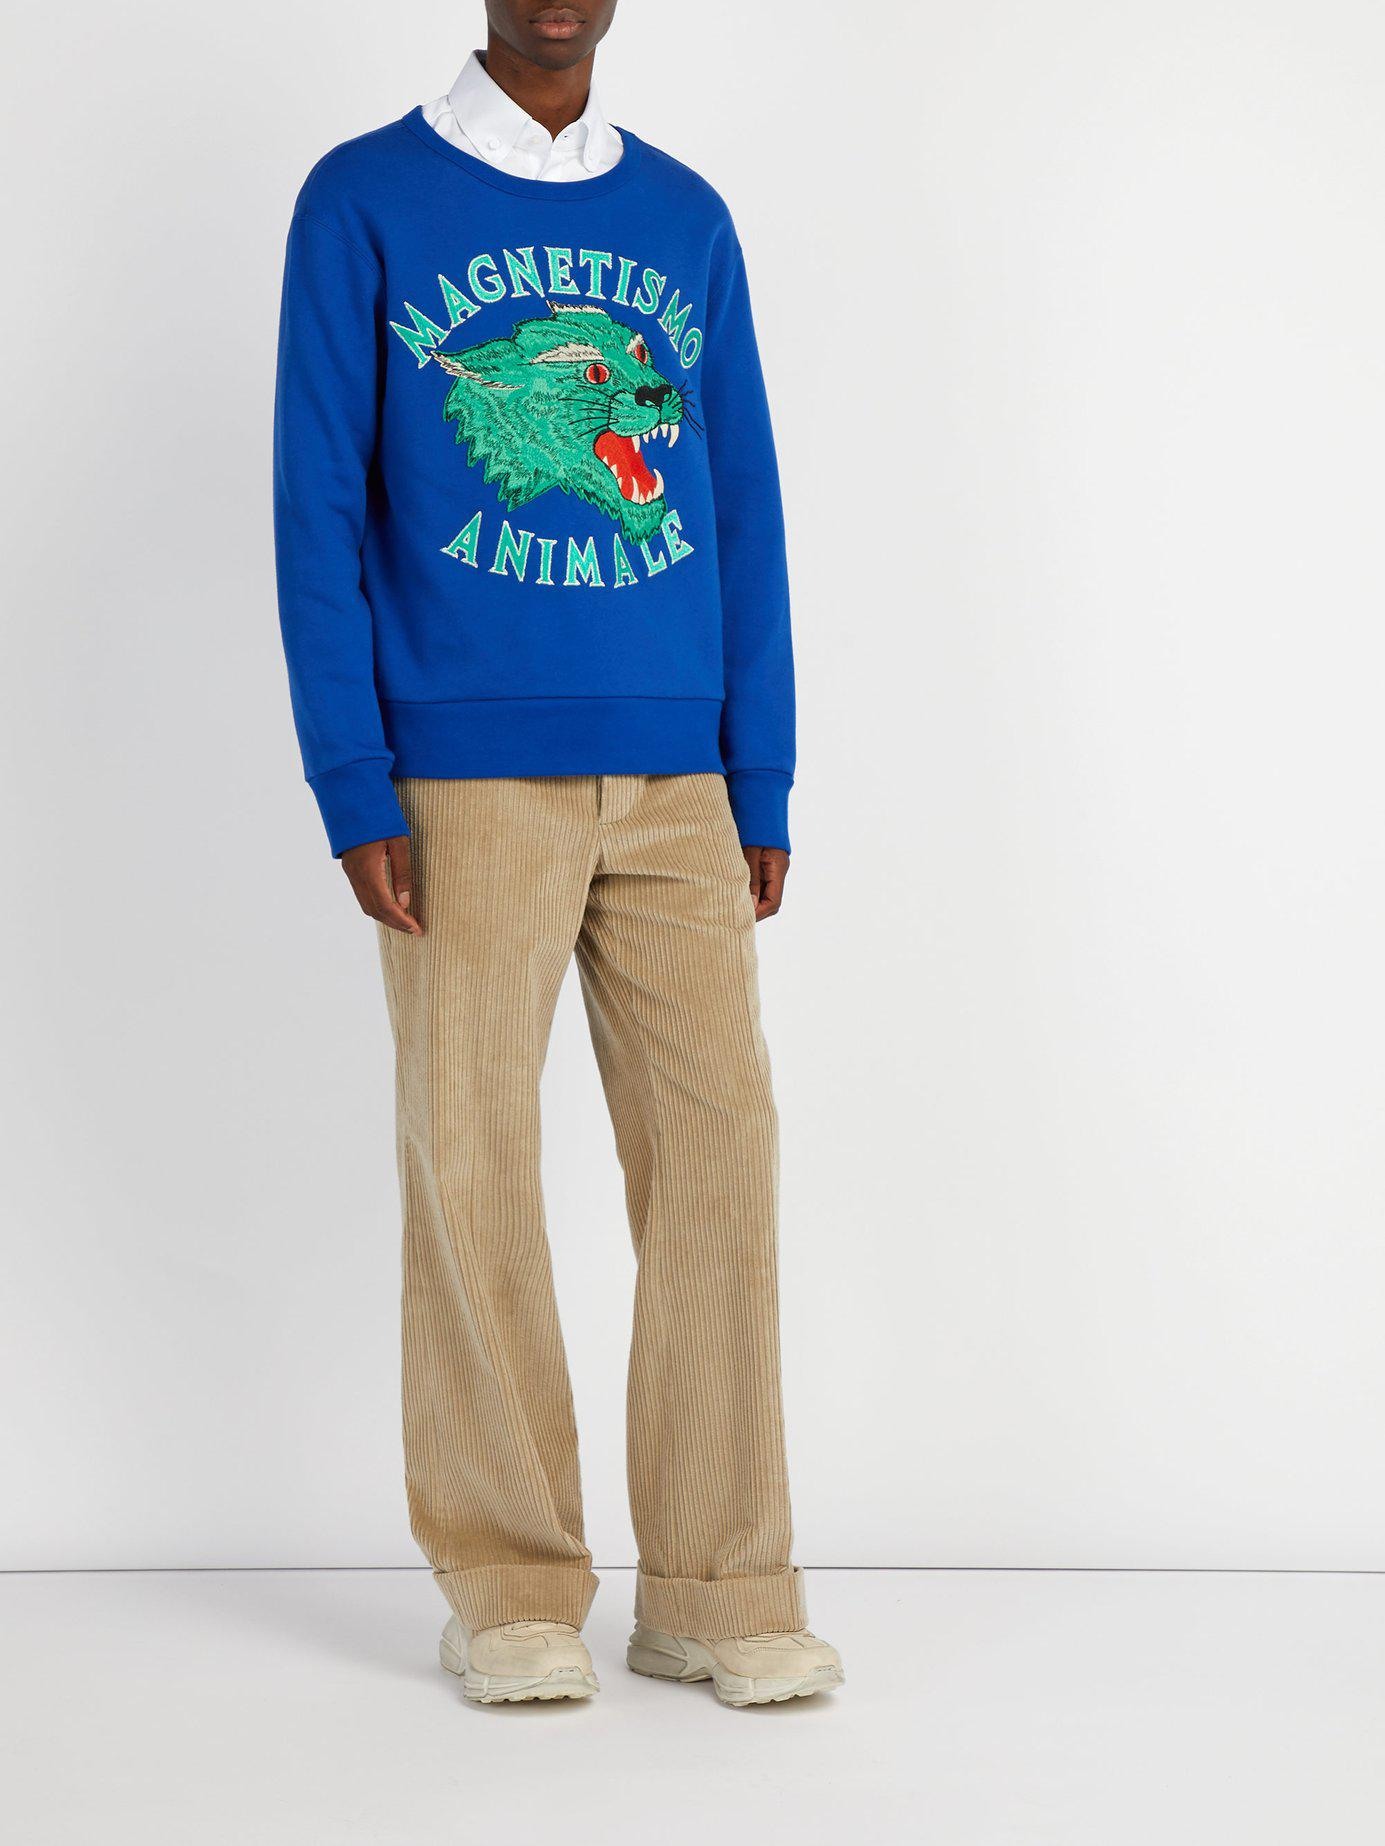 3883b69e211 Lyst - Gucci Panther Embroidered Cotton Sweatshirt in Blue for Men